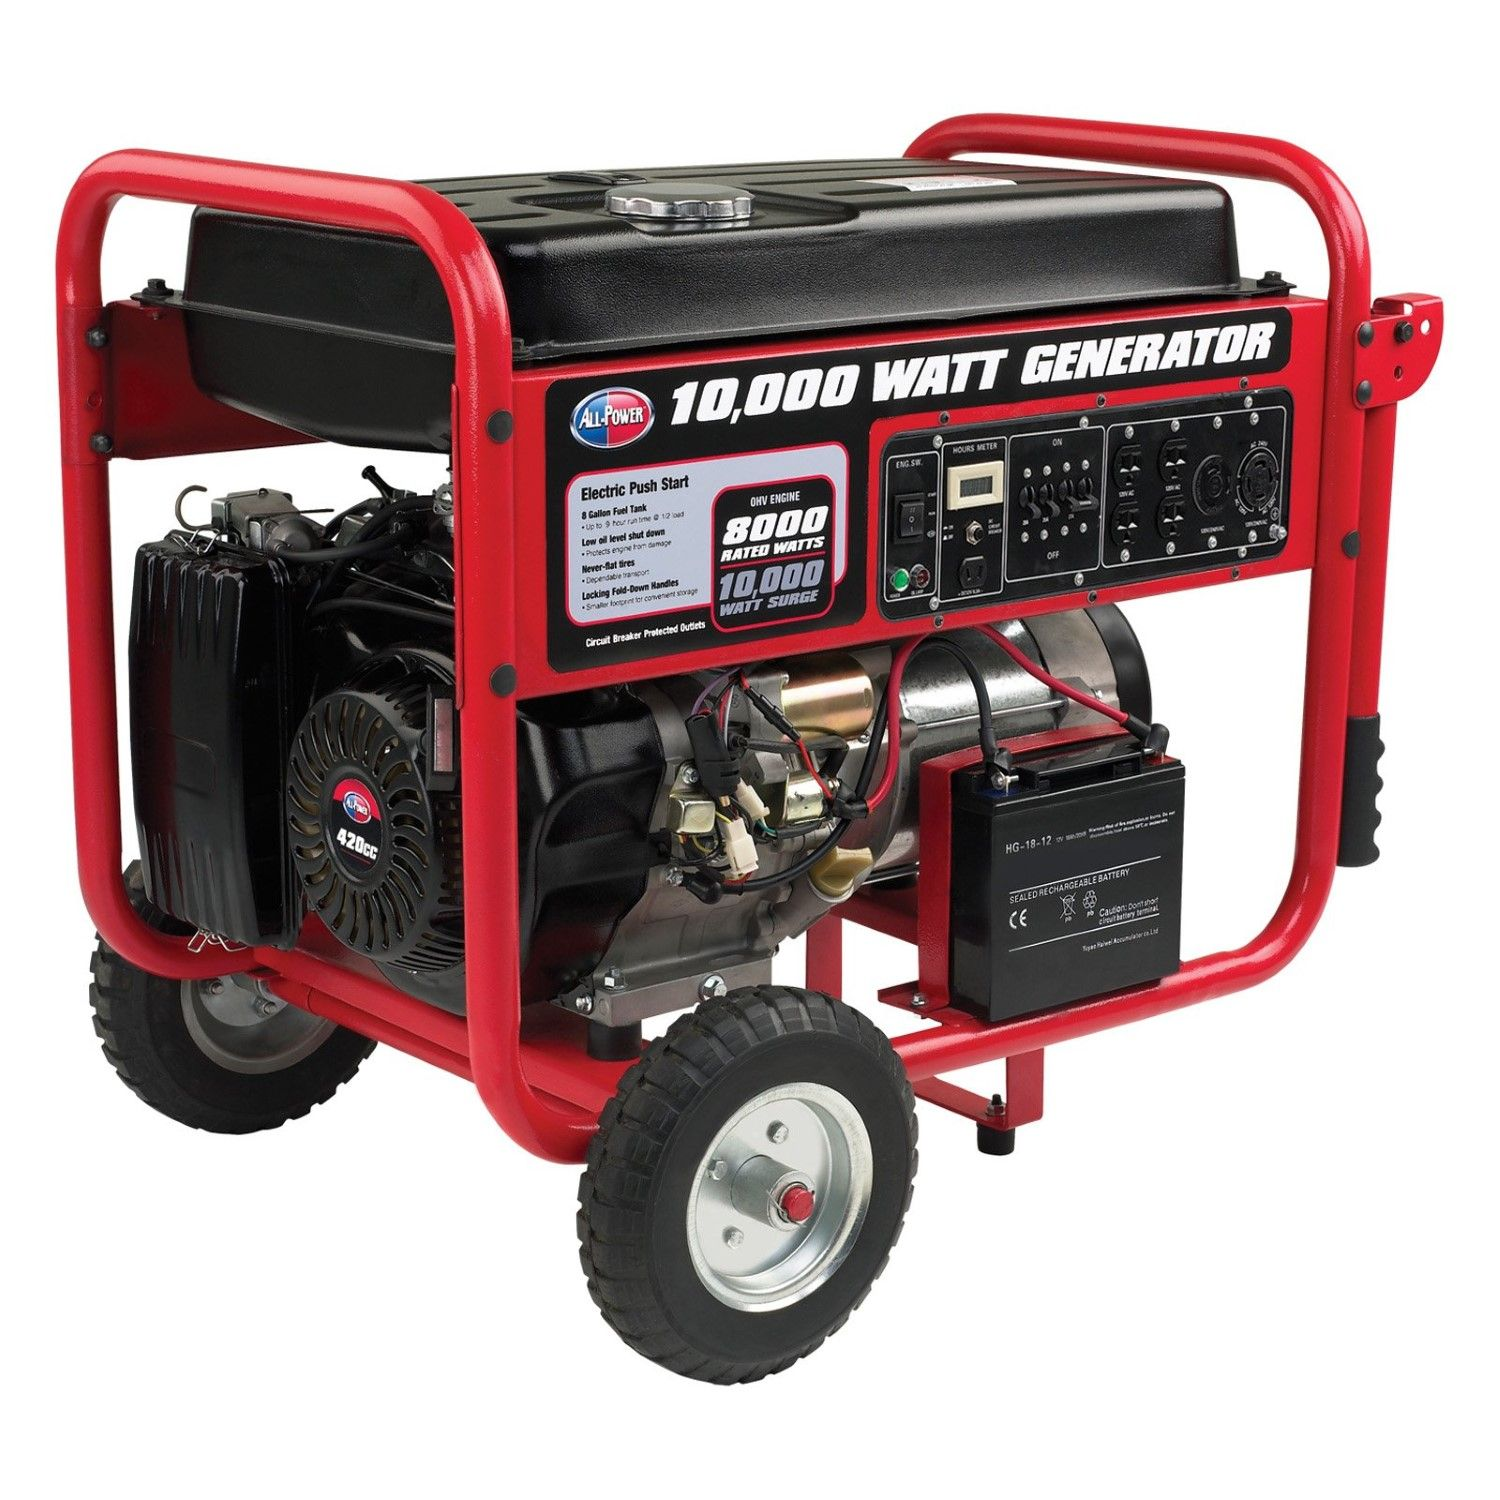 All Power W 420 CC Generator Electric Push Start Include